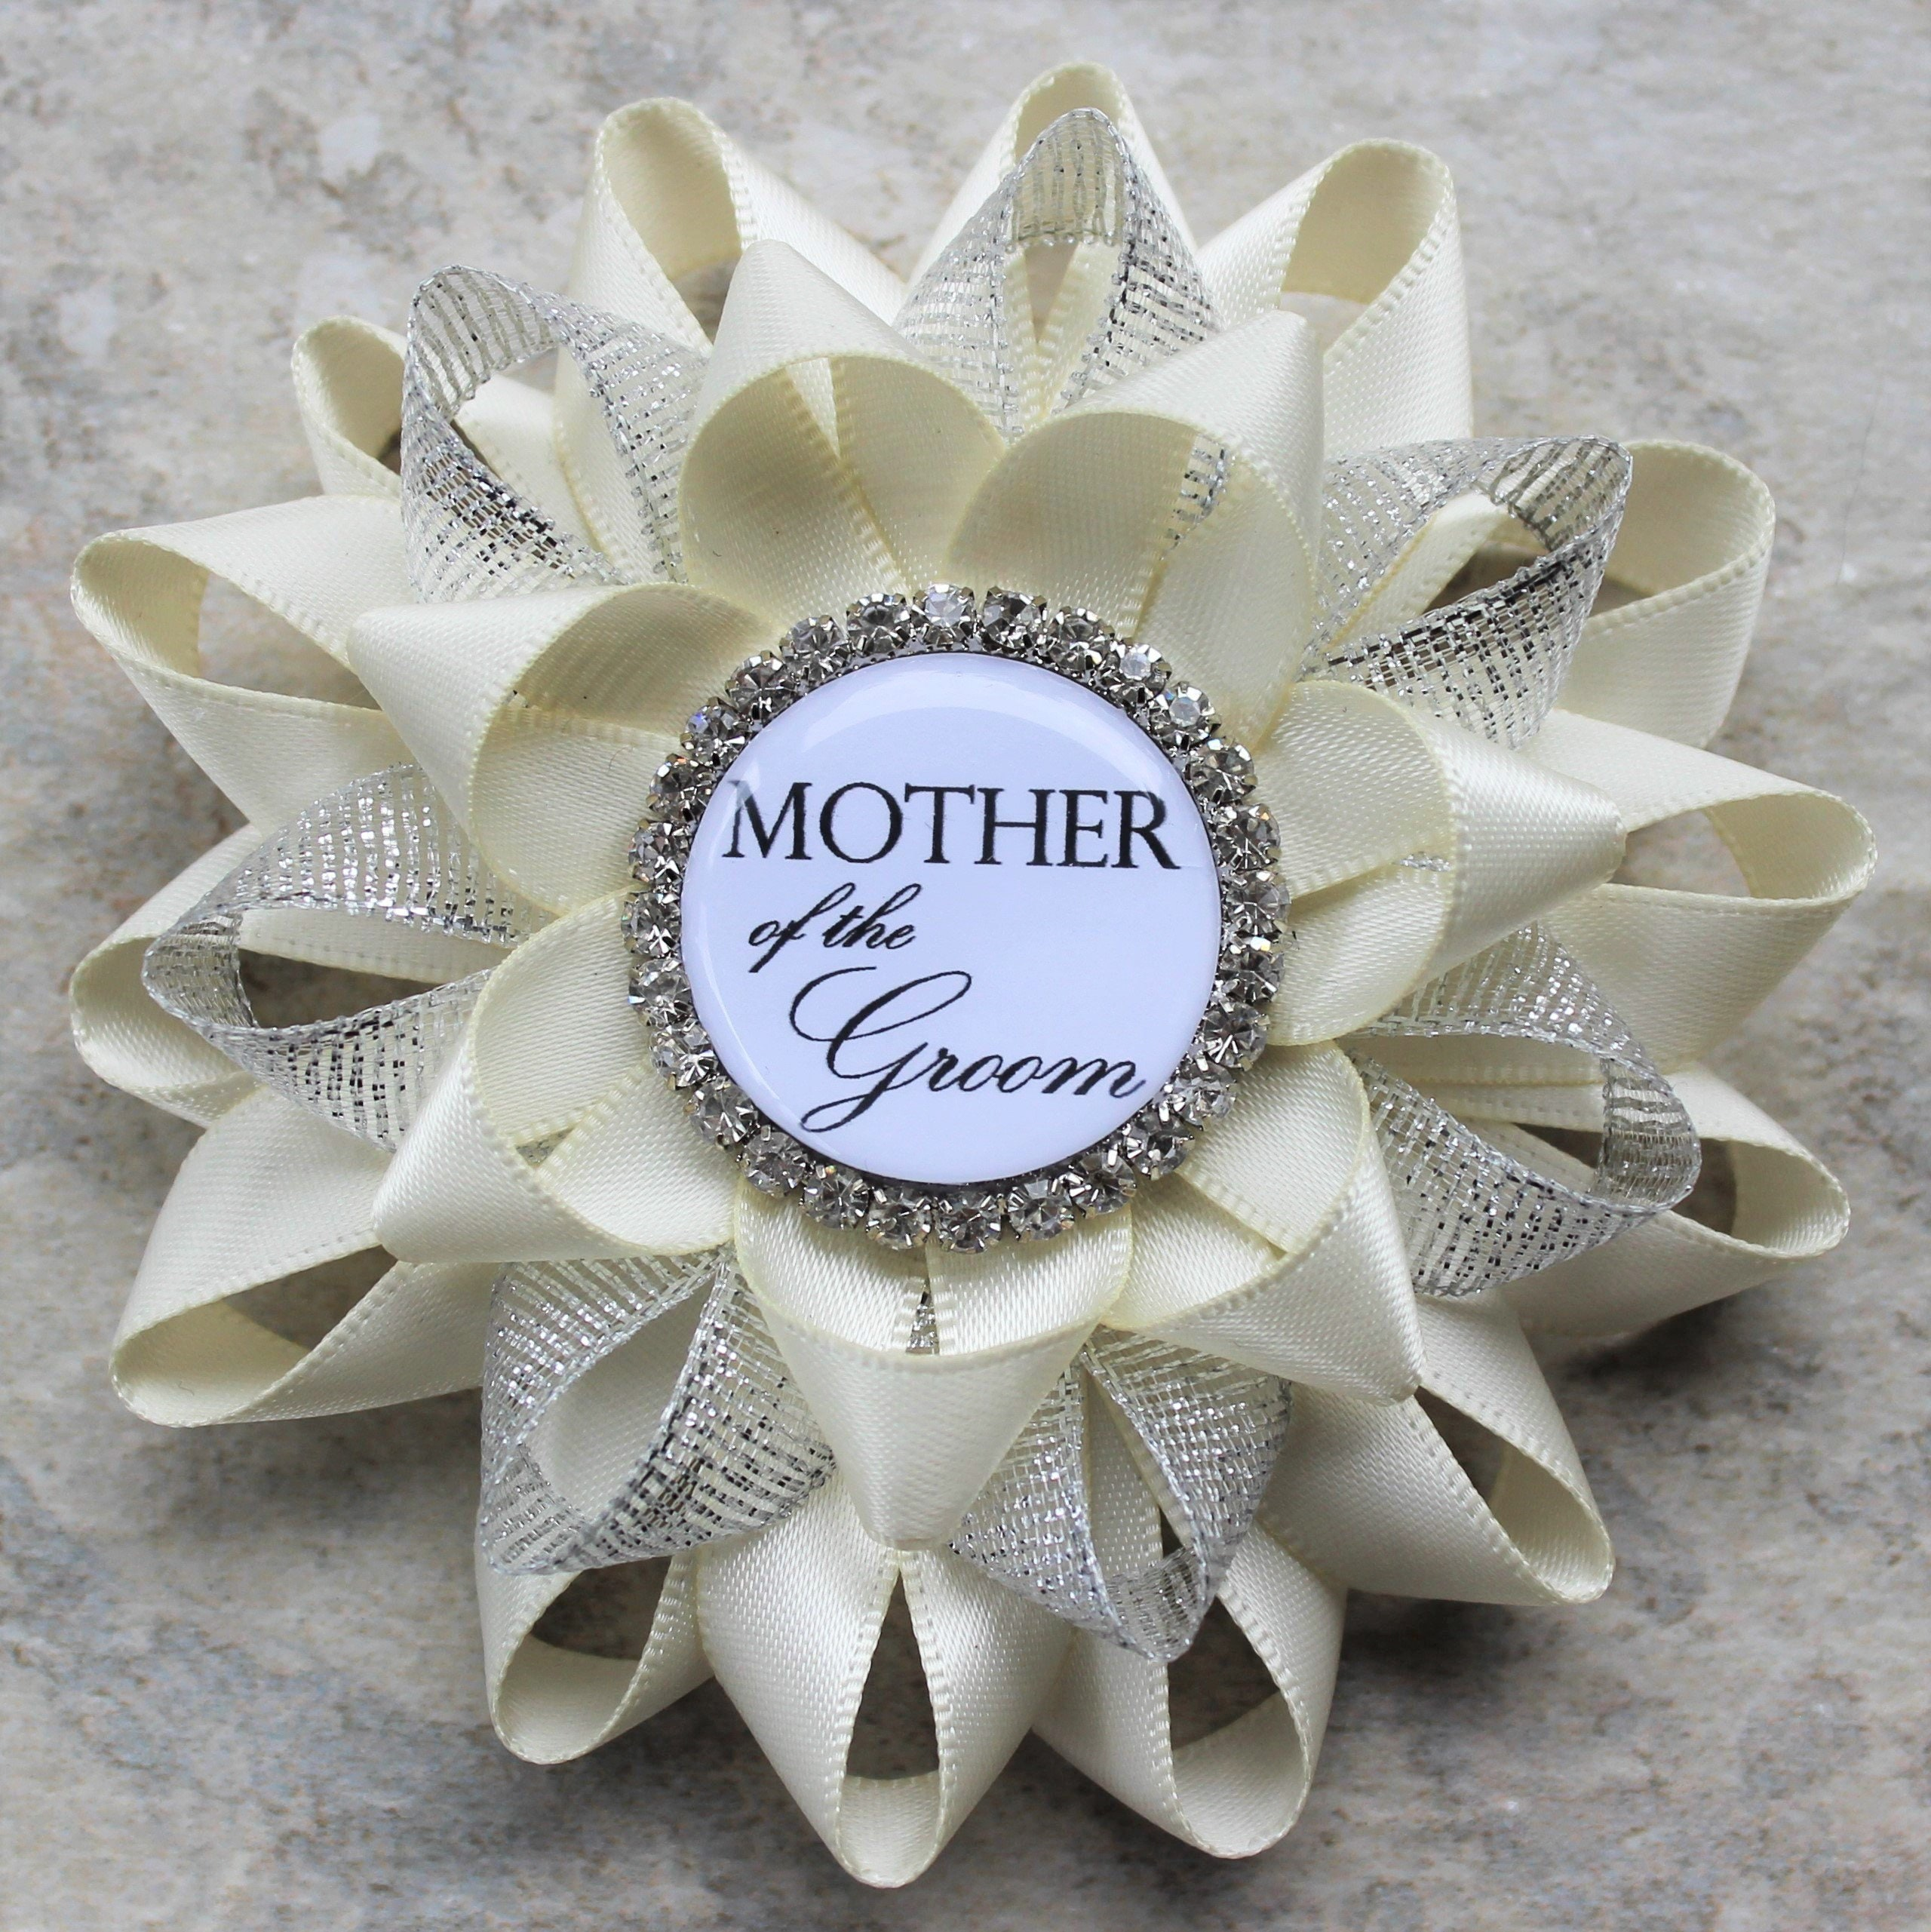 bridal shower gift mother of the groom gift mother of the bride grandmother of the bride wedding corsage pins ivory and silver